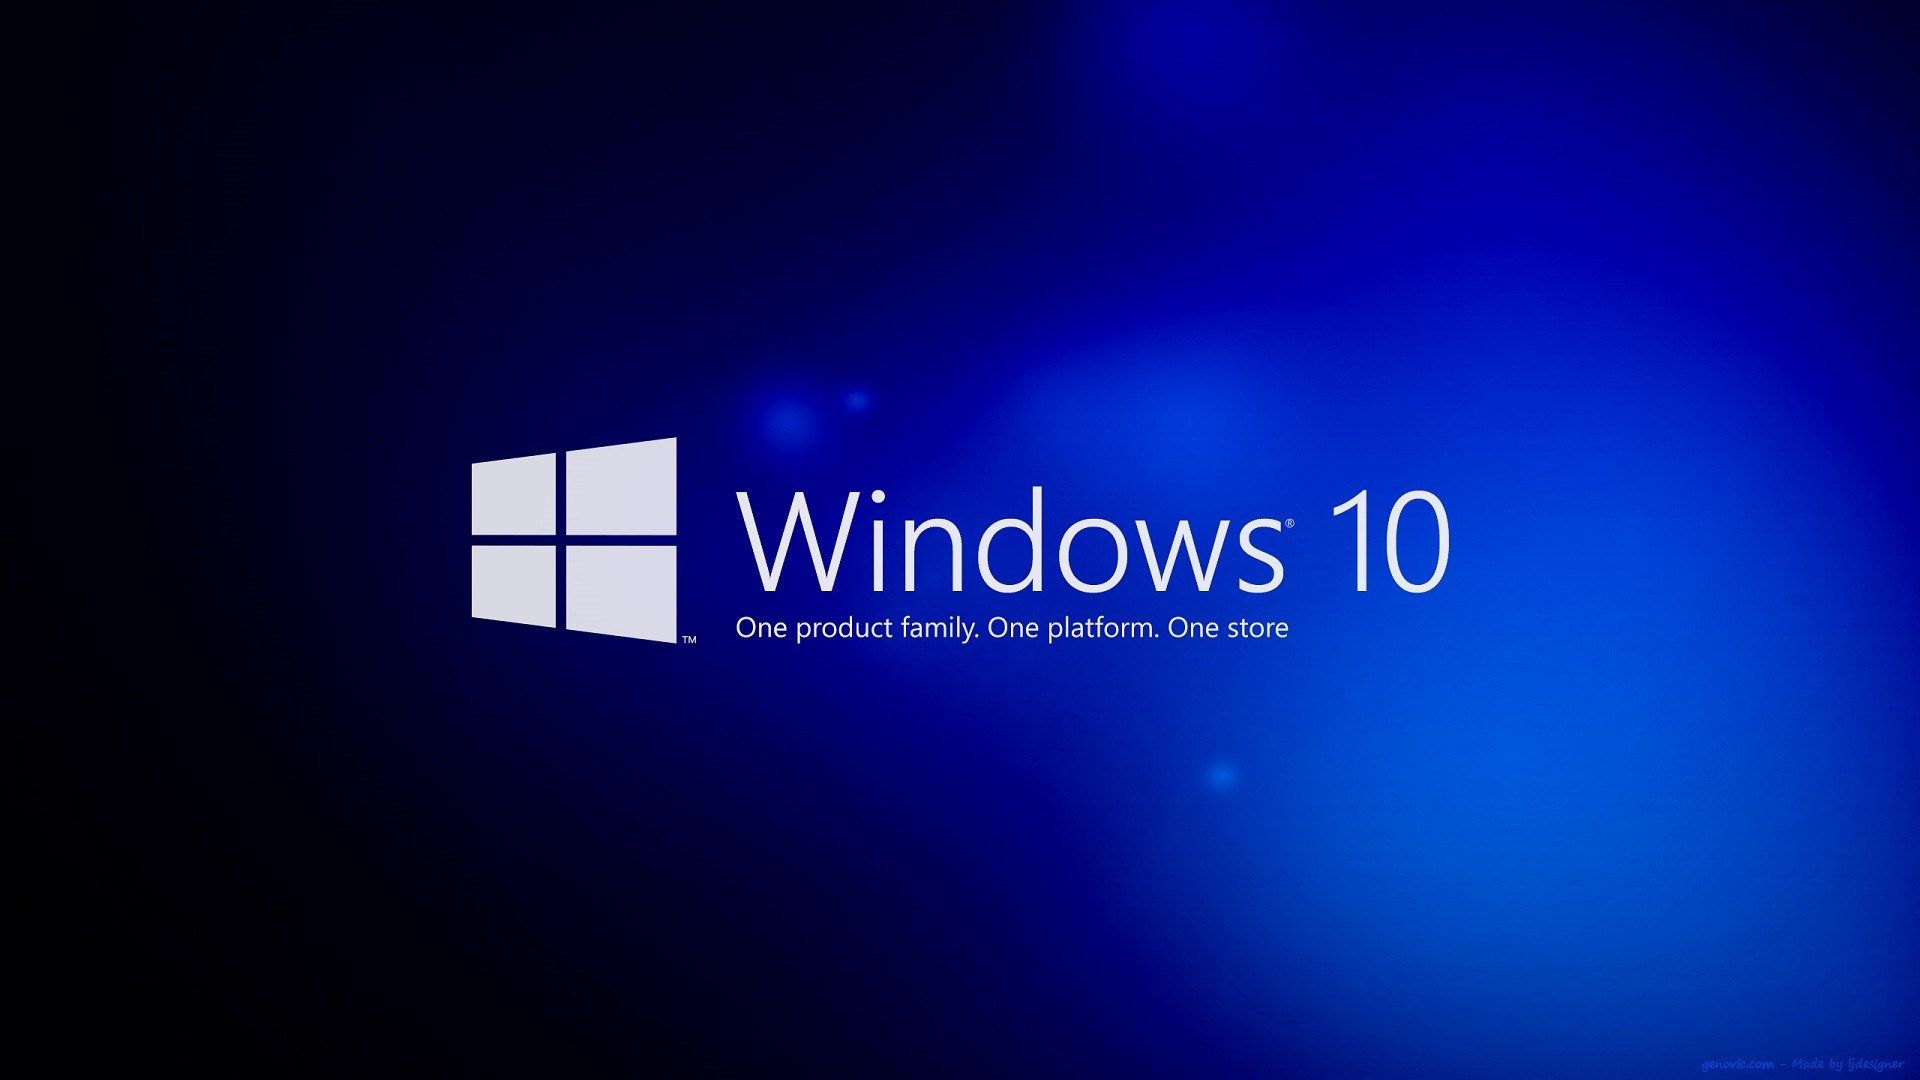 Windows 10 Wallpapers Hd The Cool Art Windows 10 Sistem Operasi Windows